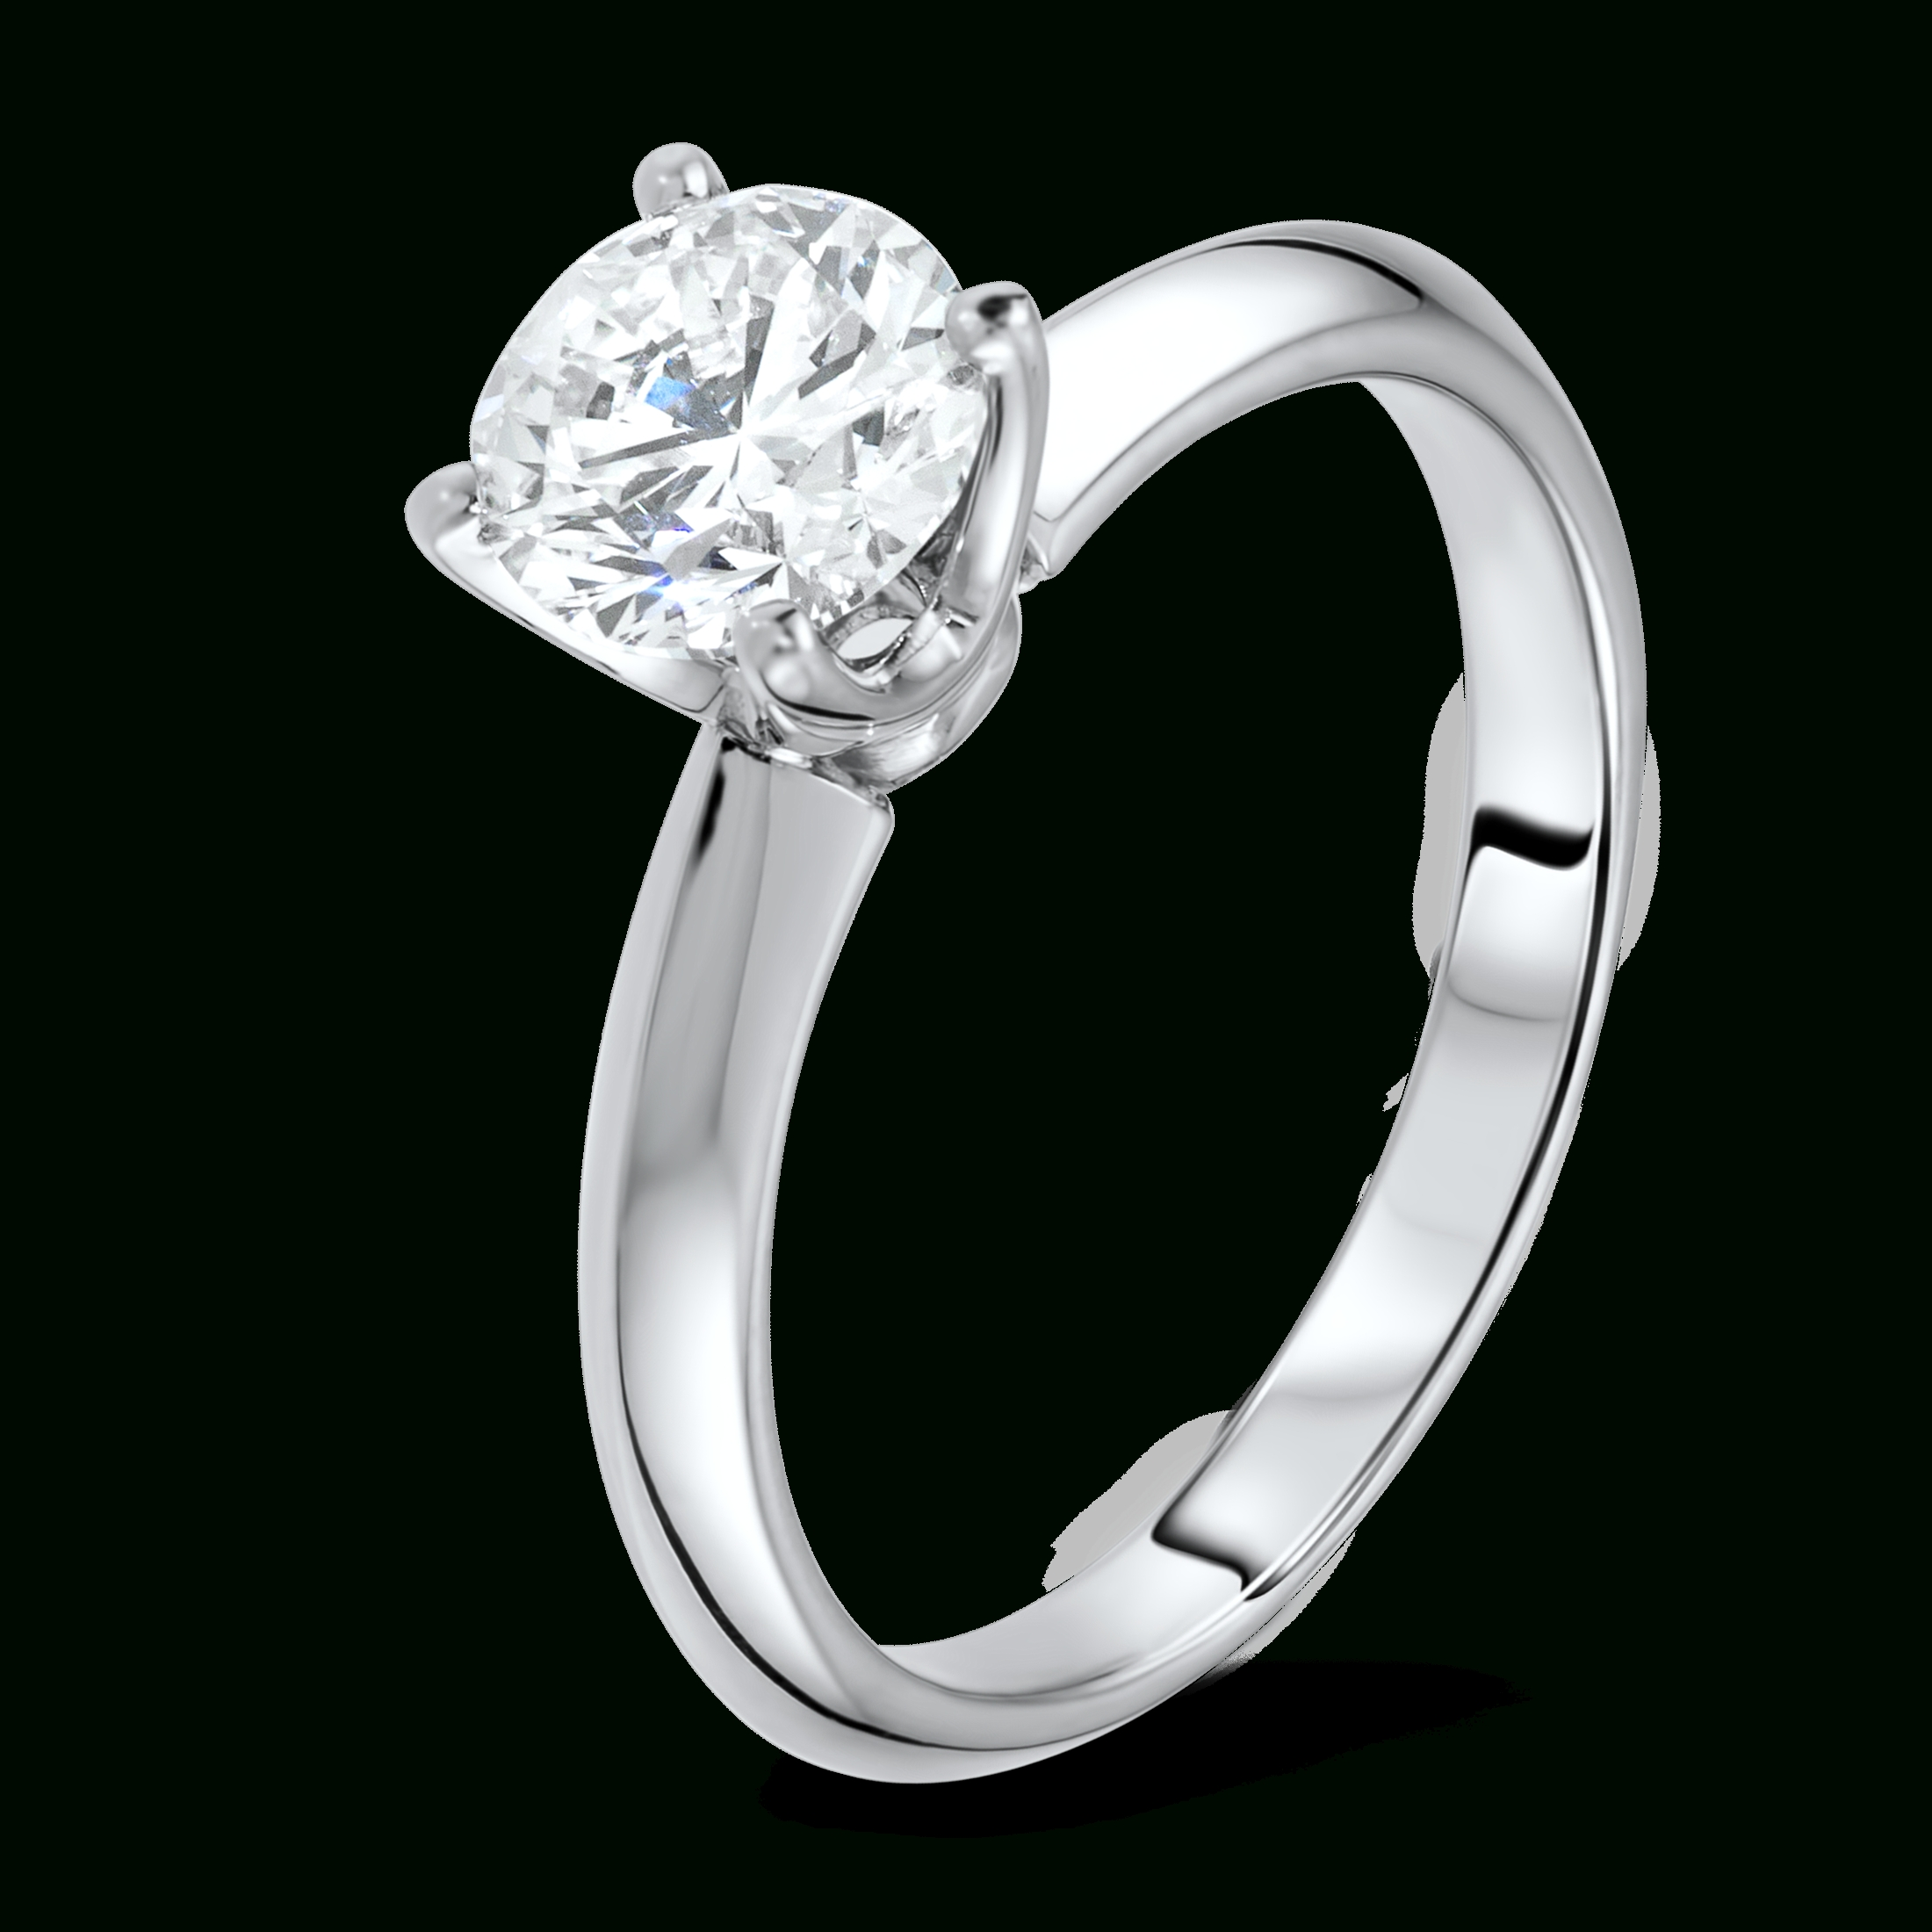 Diamond Ring In 18K White Gold – Diamondland Inside Engagement Rings 18K White Gold (Gallery 11 of 15)